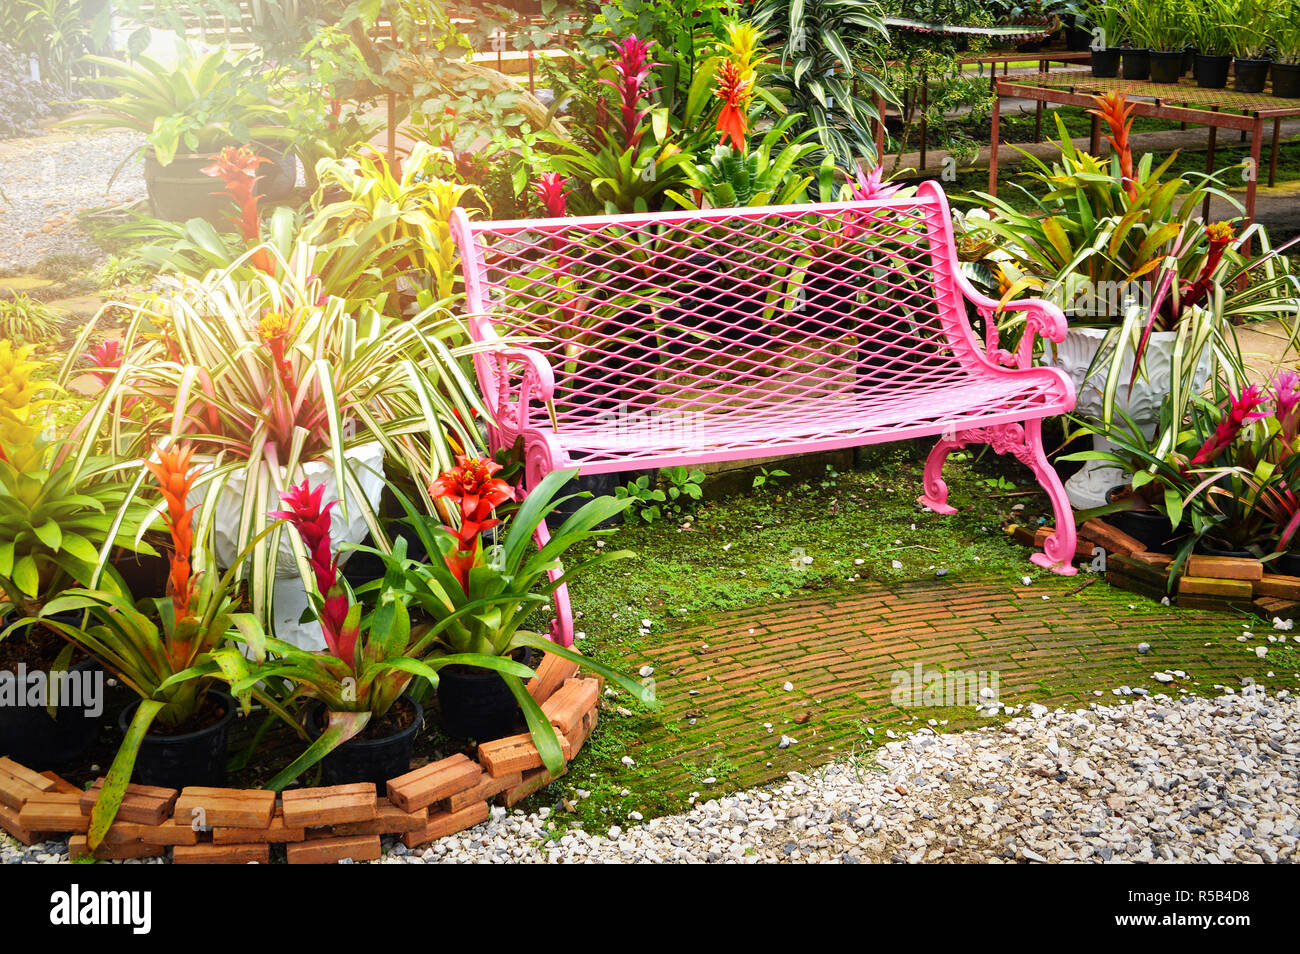 Swell Garden Bench Outdoors Pink Vintage Bench Chair In The Machost Co Dining Chair Design Ideas Machostcouk